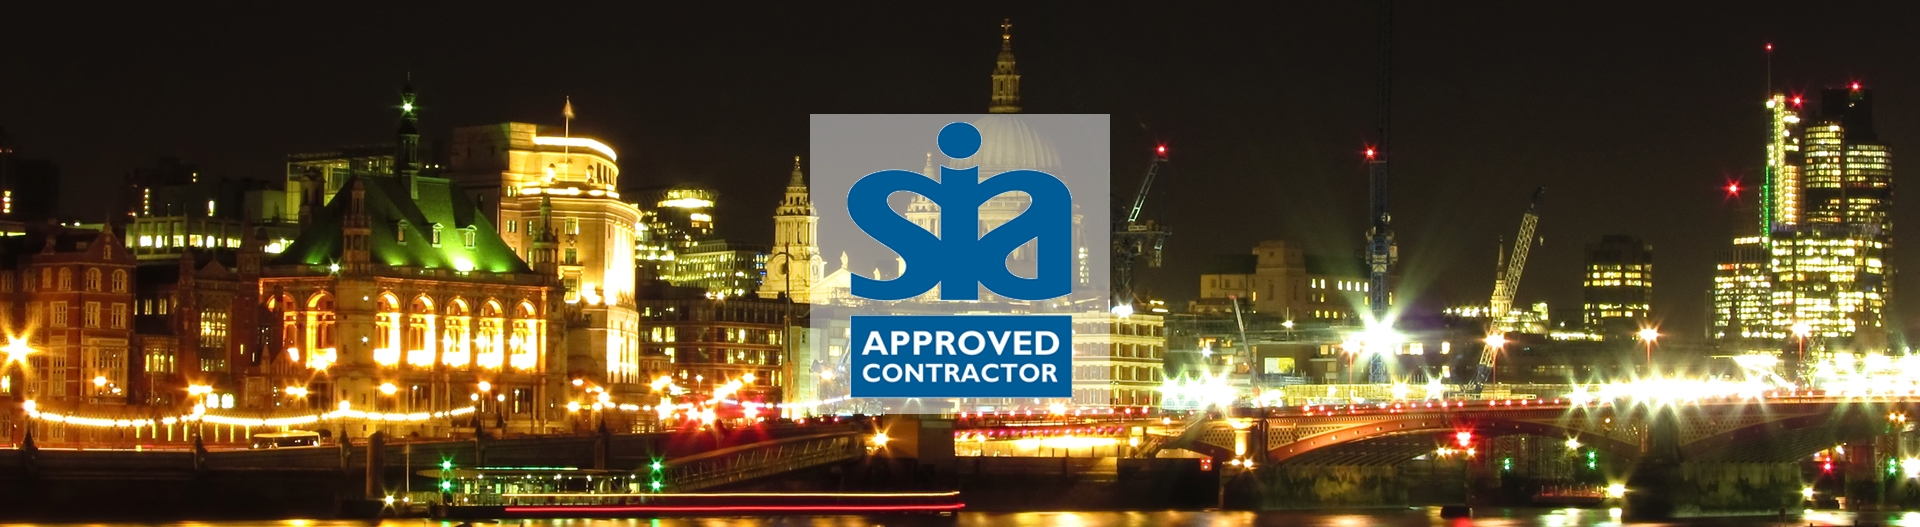 SIA Approved Contractor_London